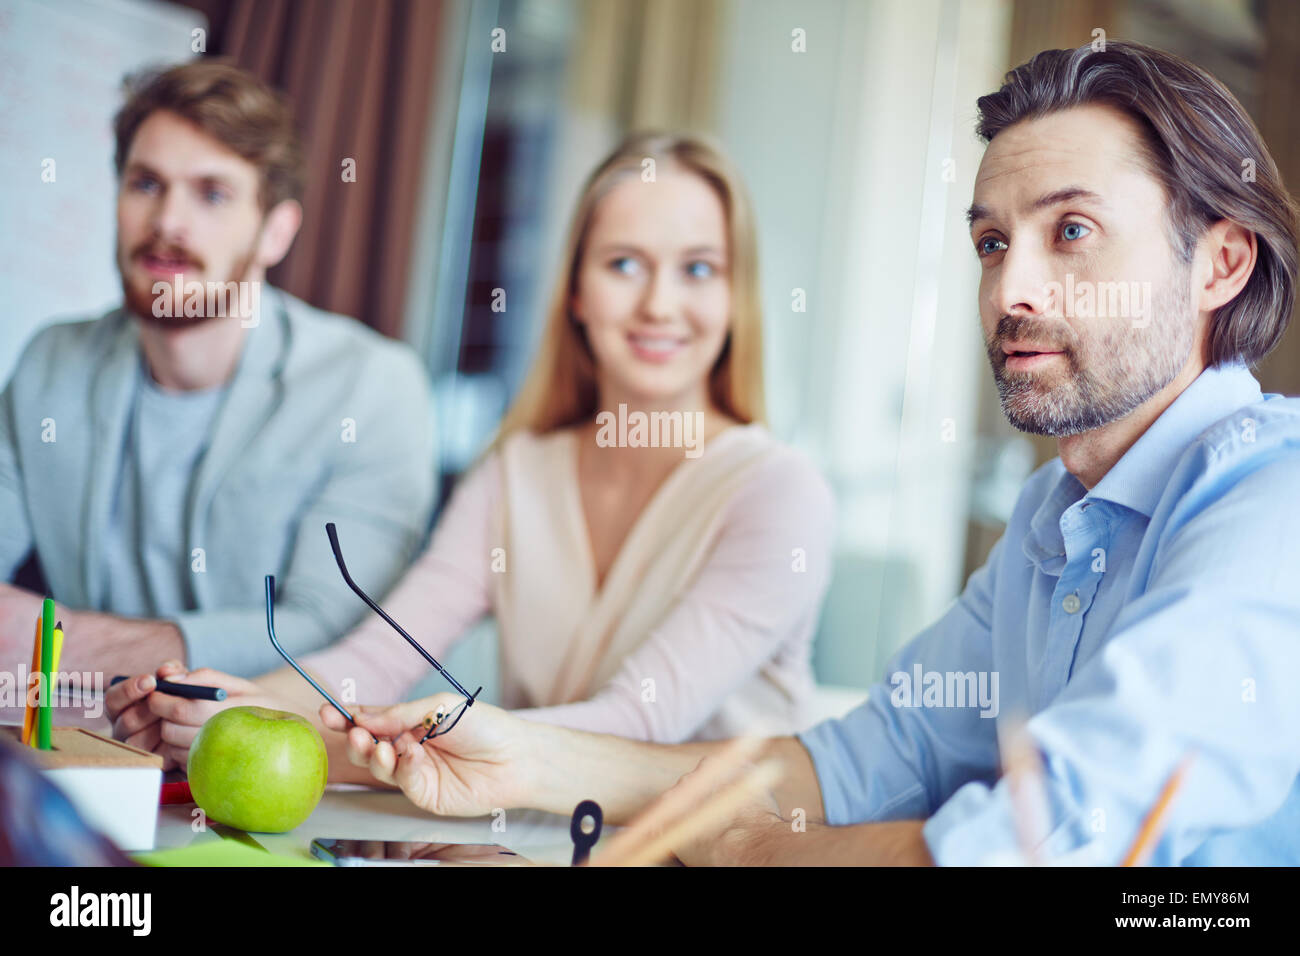 Confident businessman debating with co-worker at meeting - Stock Image